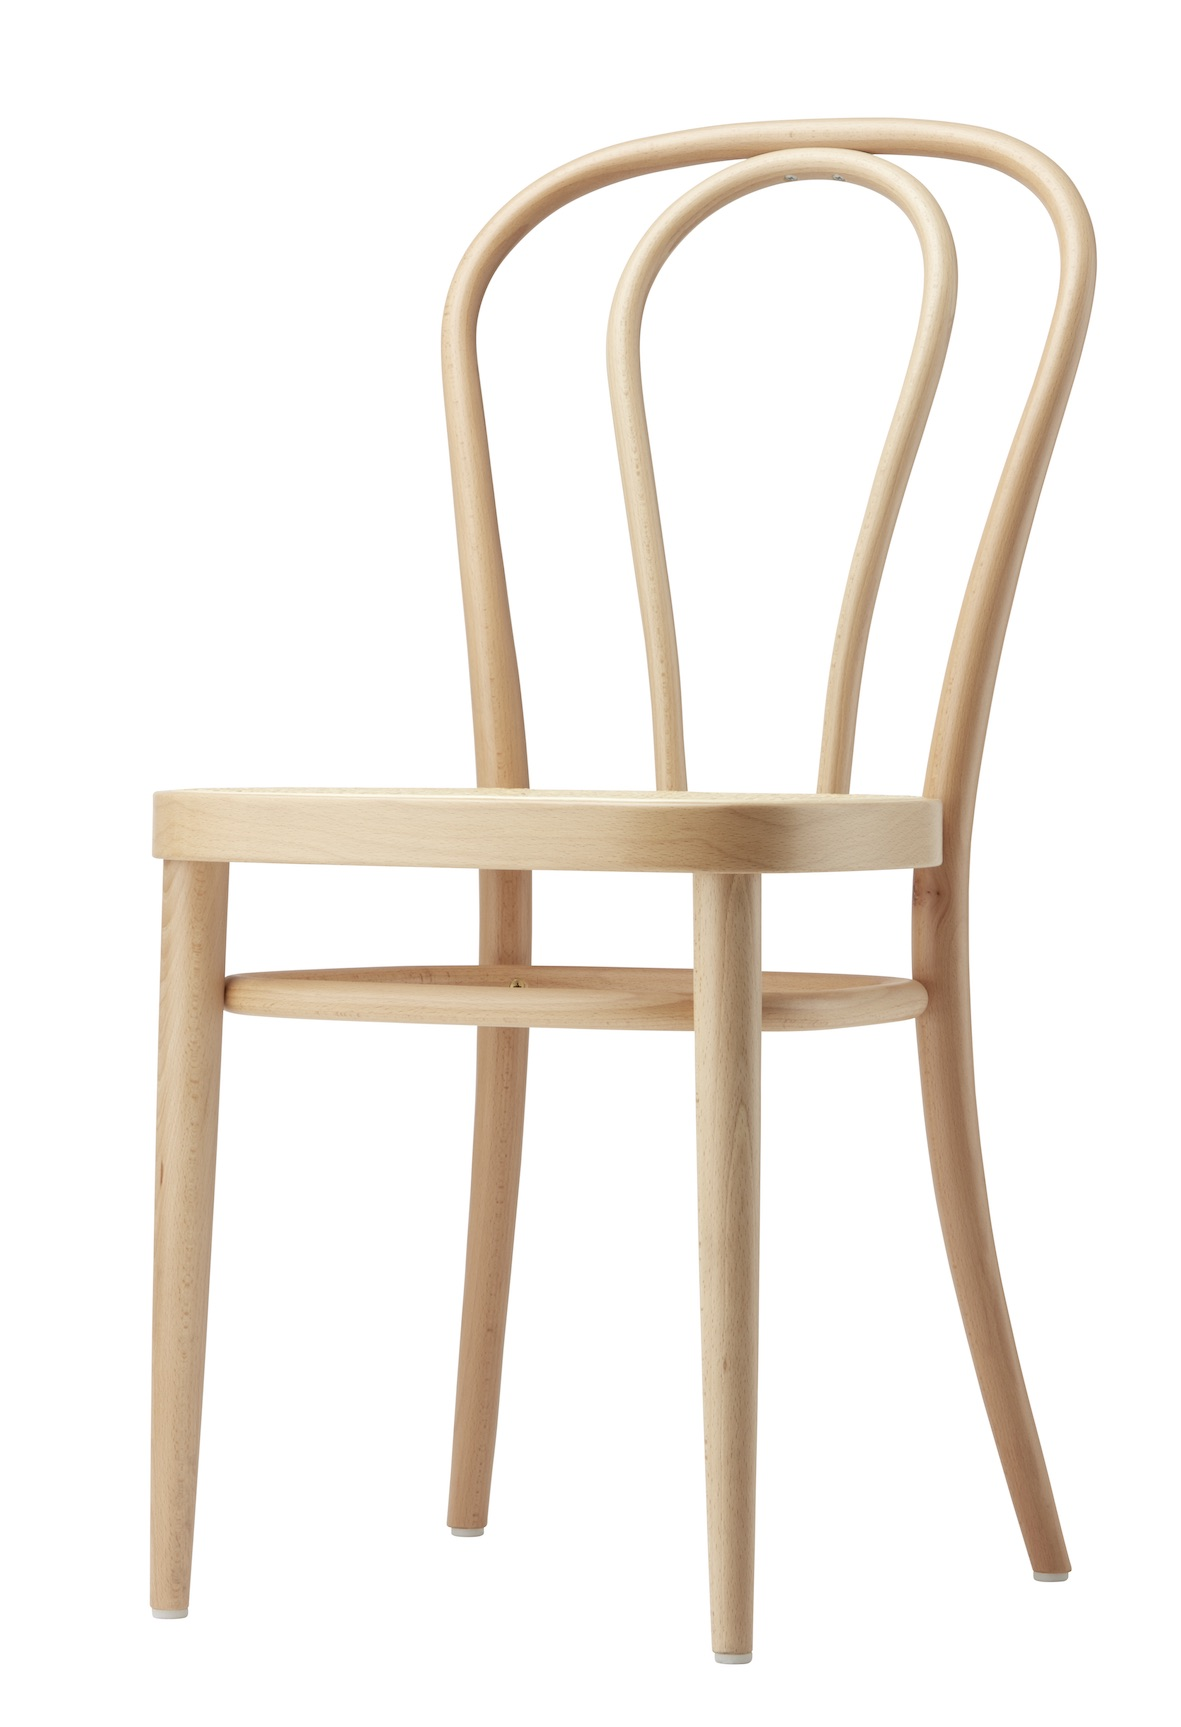 A brief history of thonet 39 s bistro chair for Stuhl design thonet